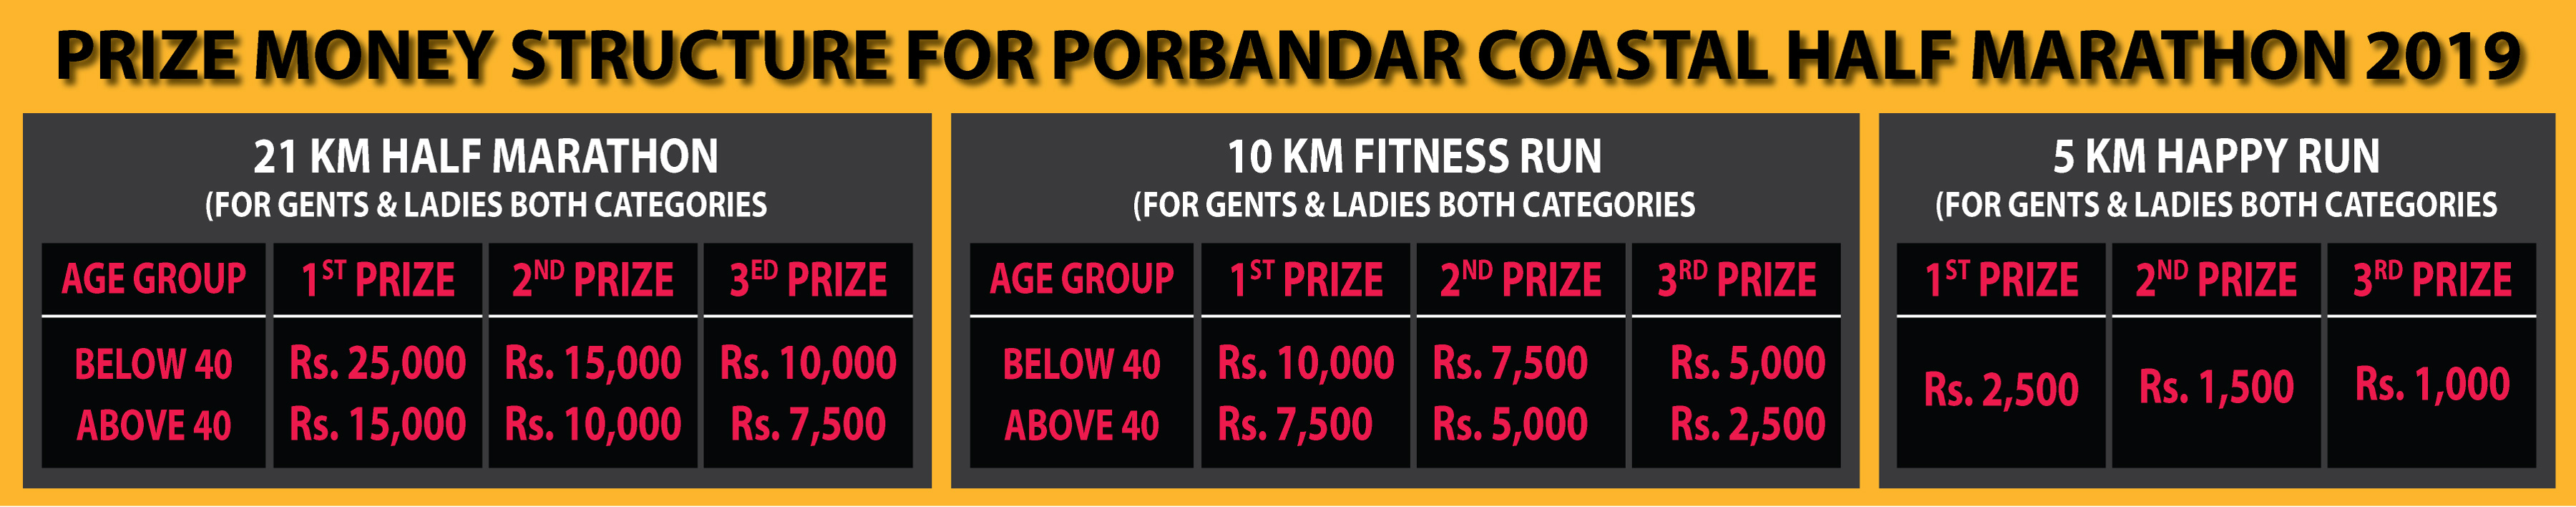 Porbandar Coastal Half Marathon 2019 Prize Money